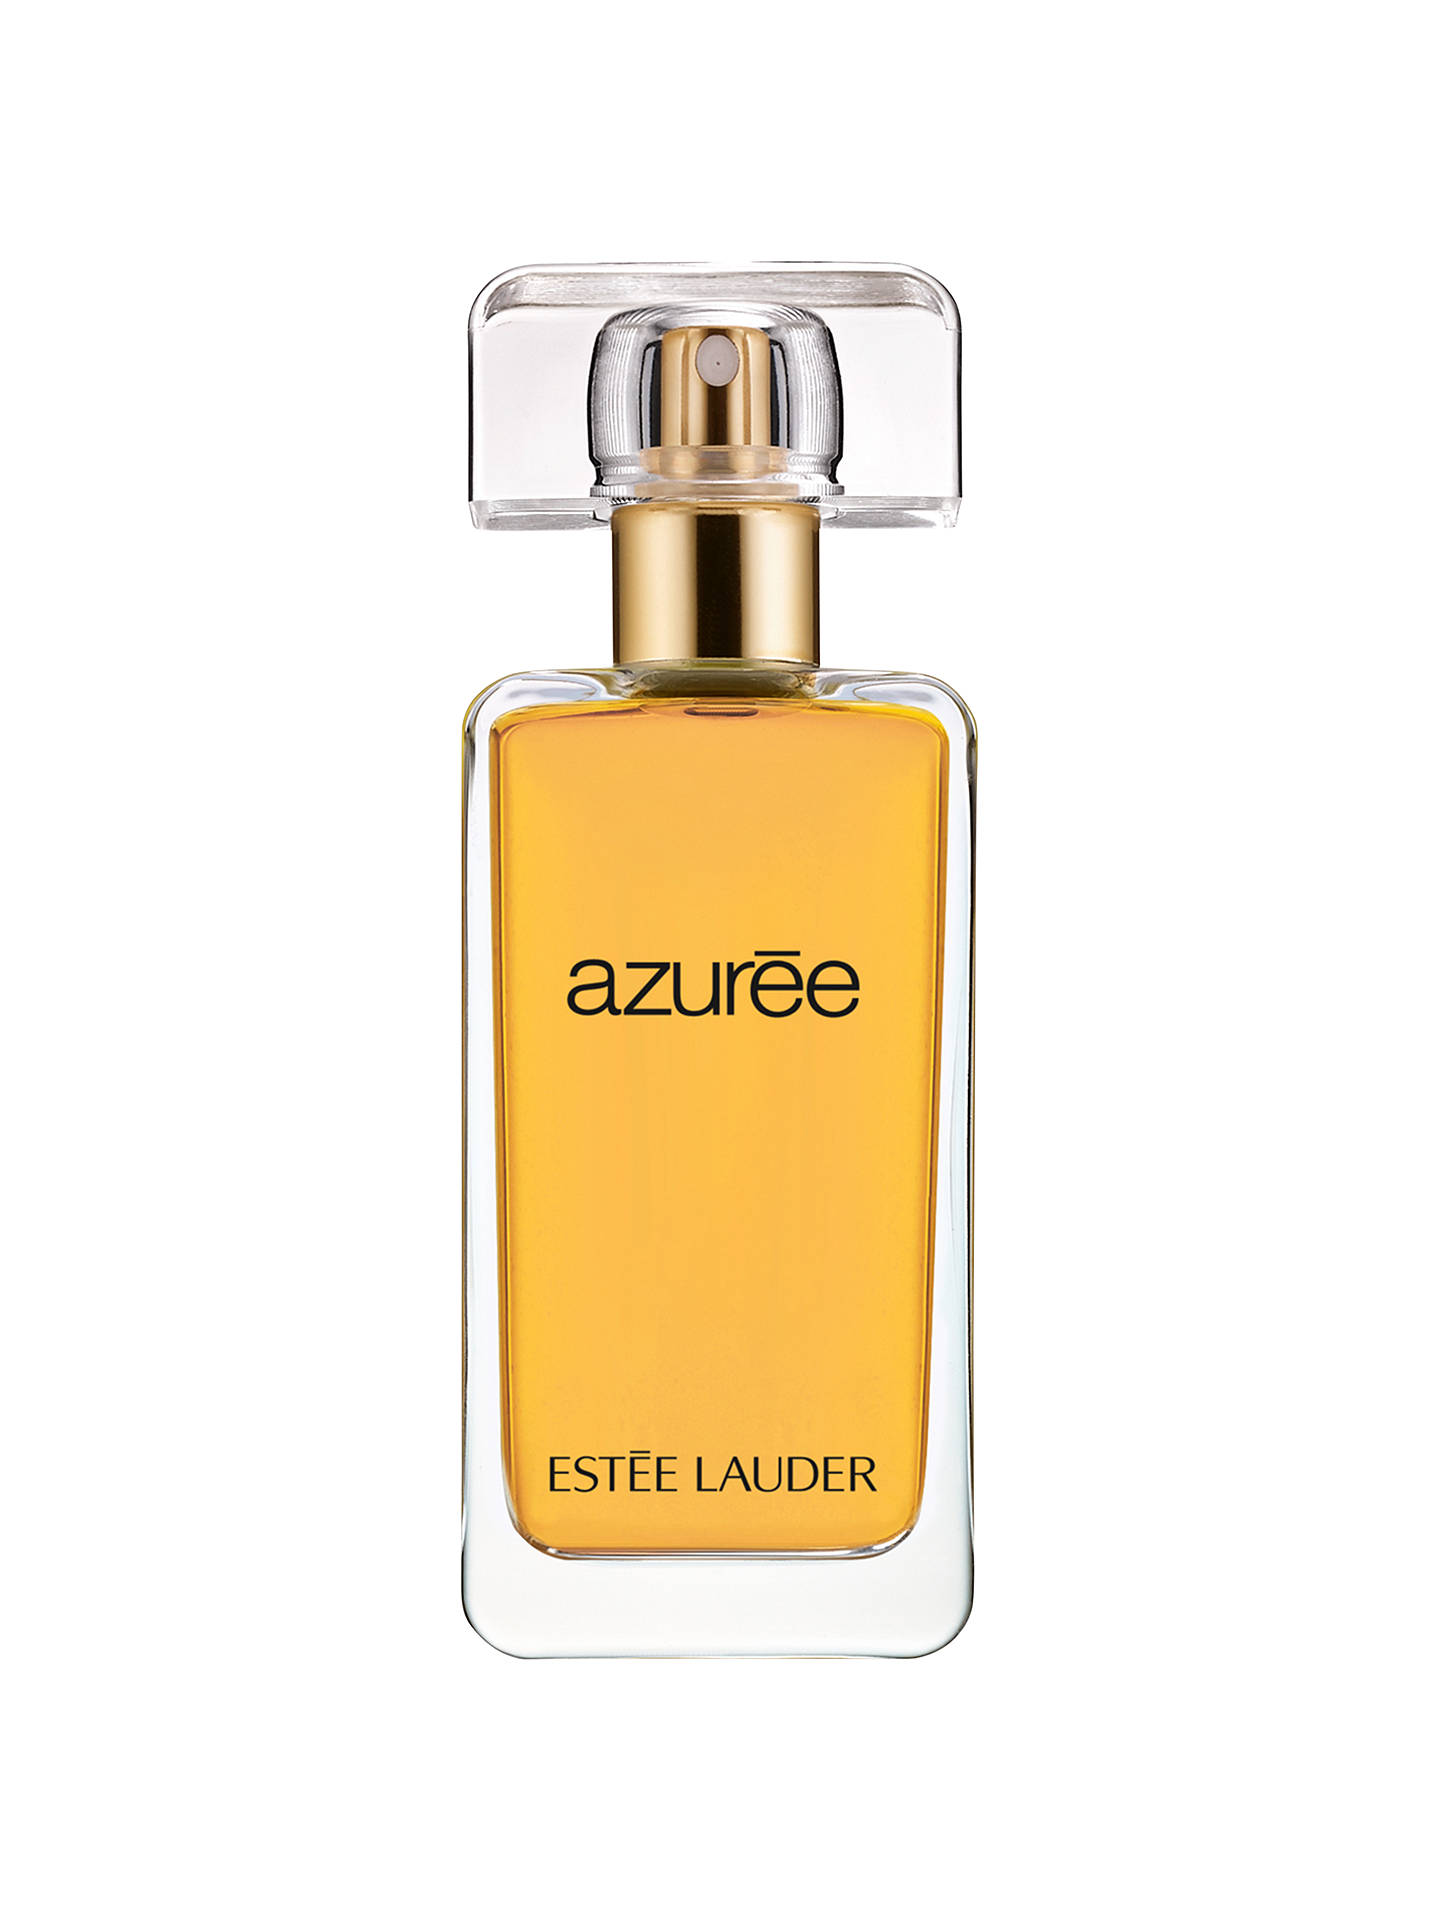 BuyEstée Lauder Azureé Eau de Parfum, 50ml Online at johnlewis.com